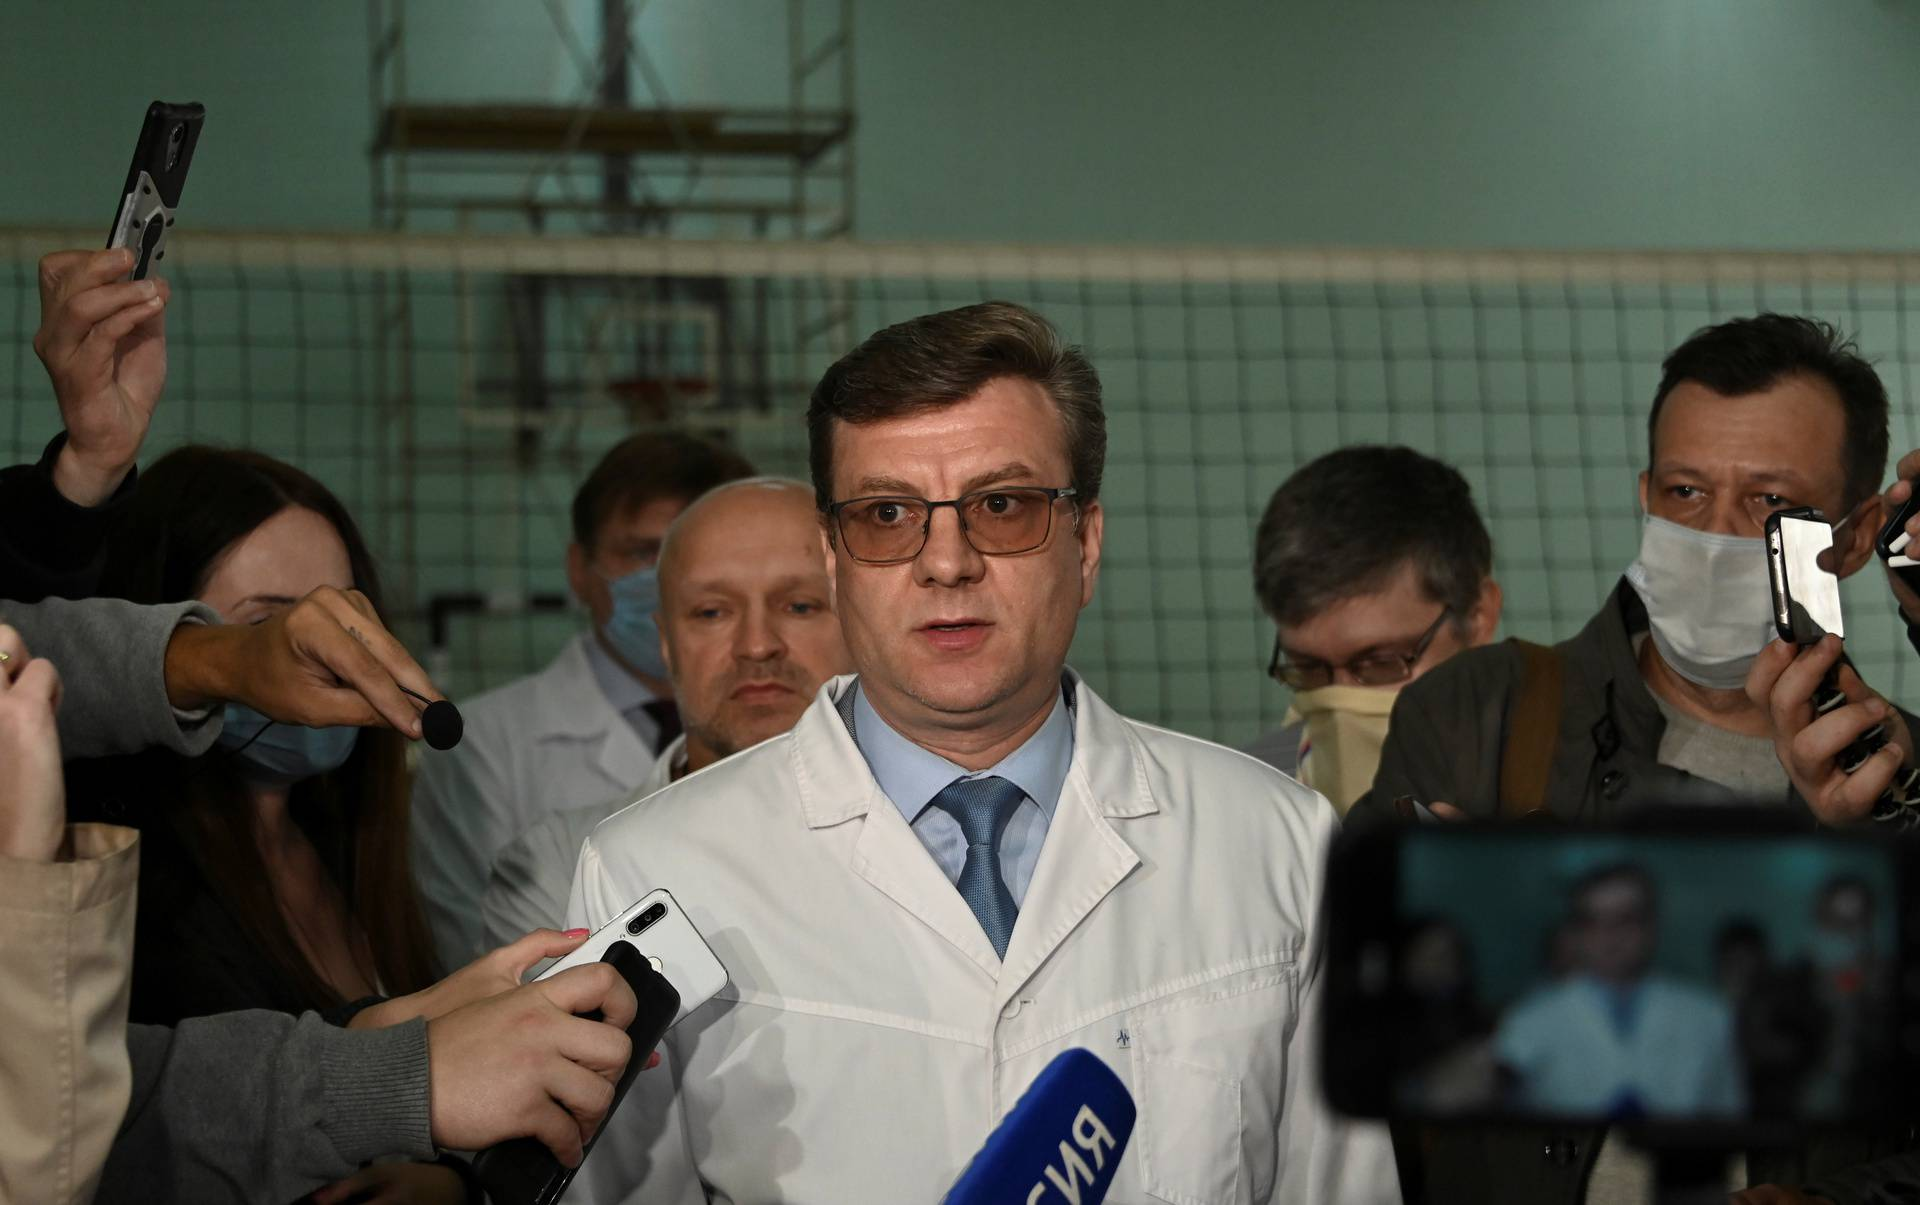 Alexander Murakhovsky, chief doctor of a hospital, where Alexei receives medical treatment, speaks with the media in Omsk